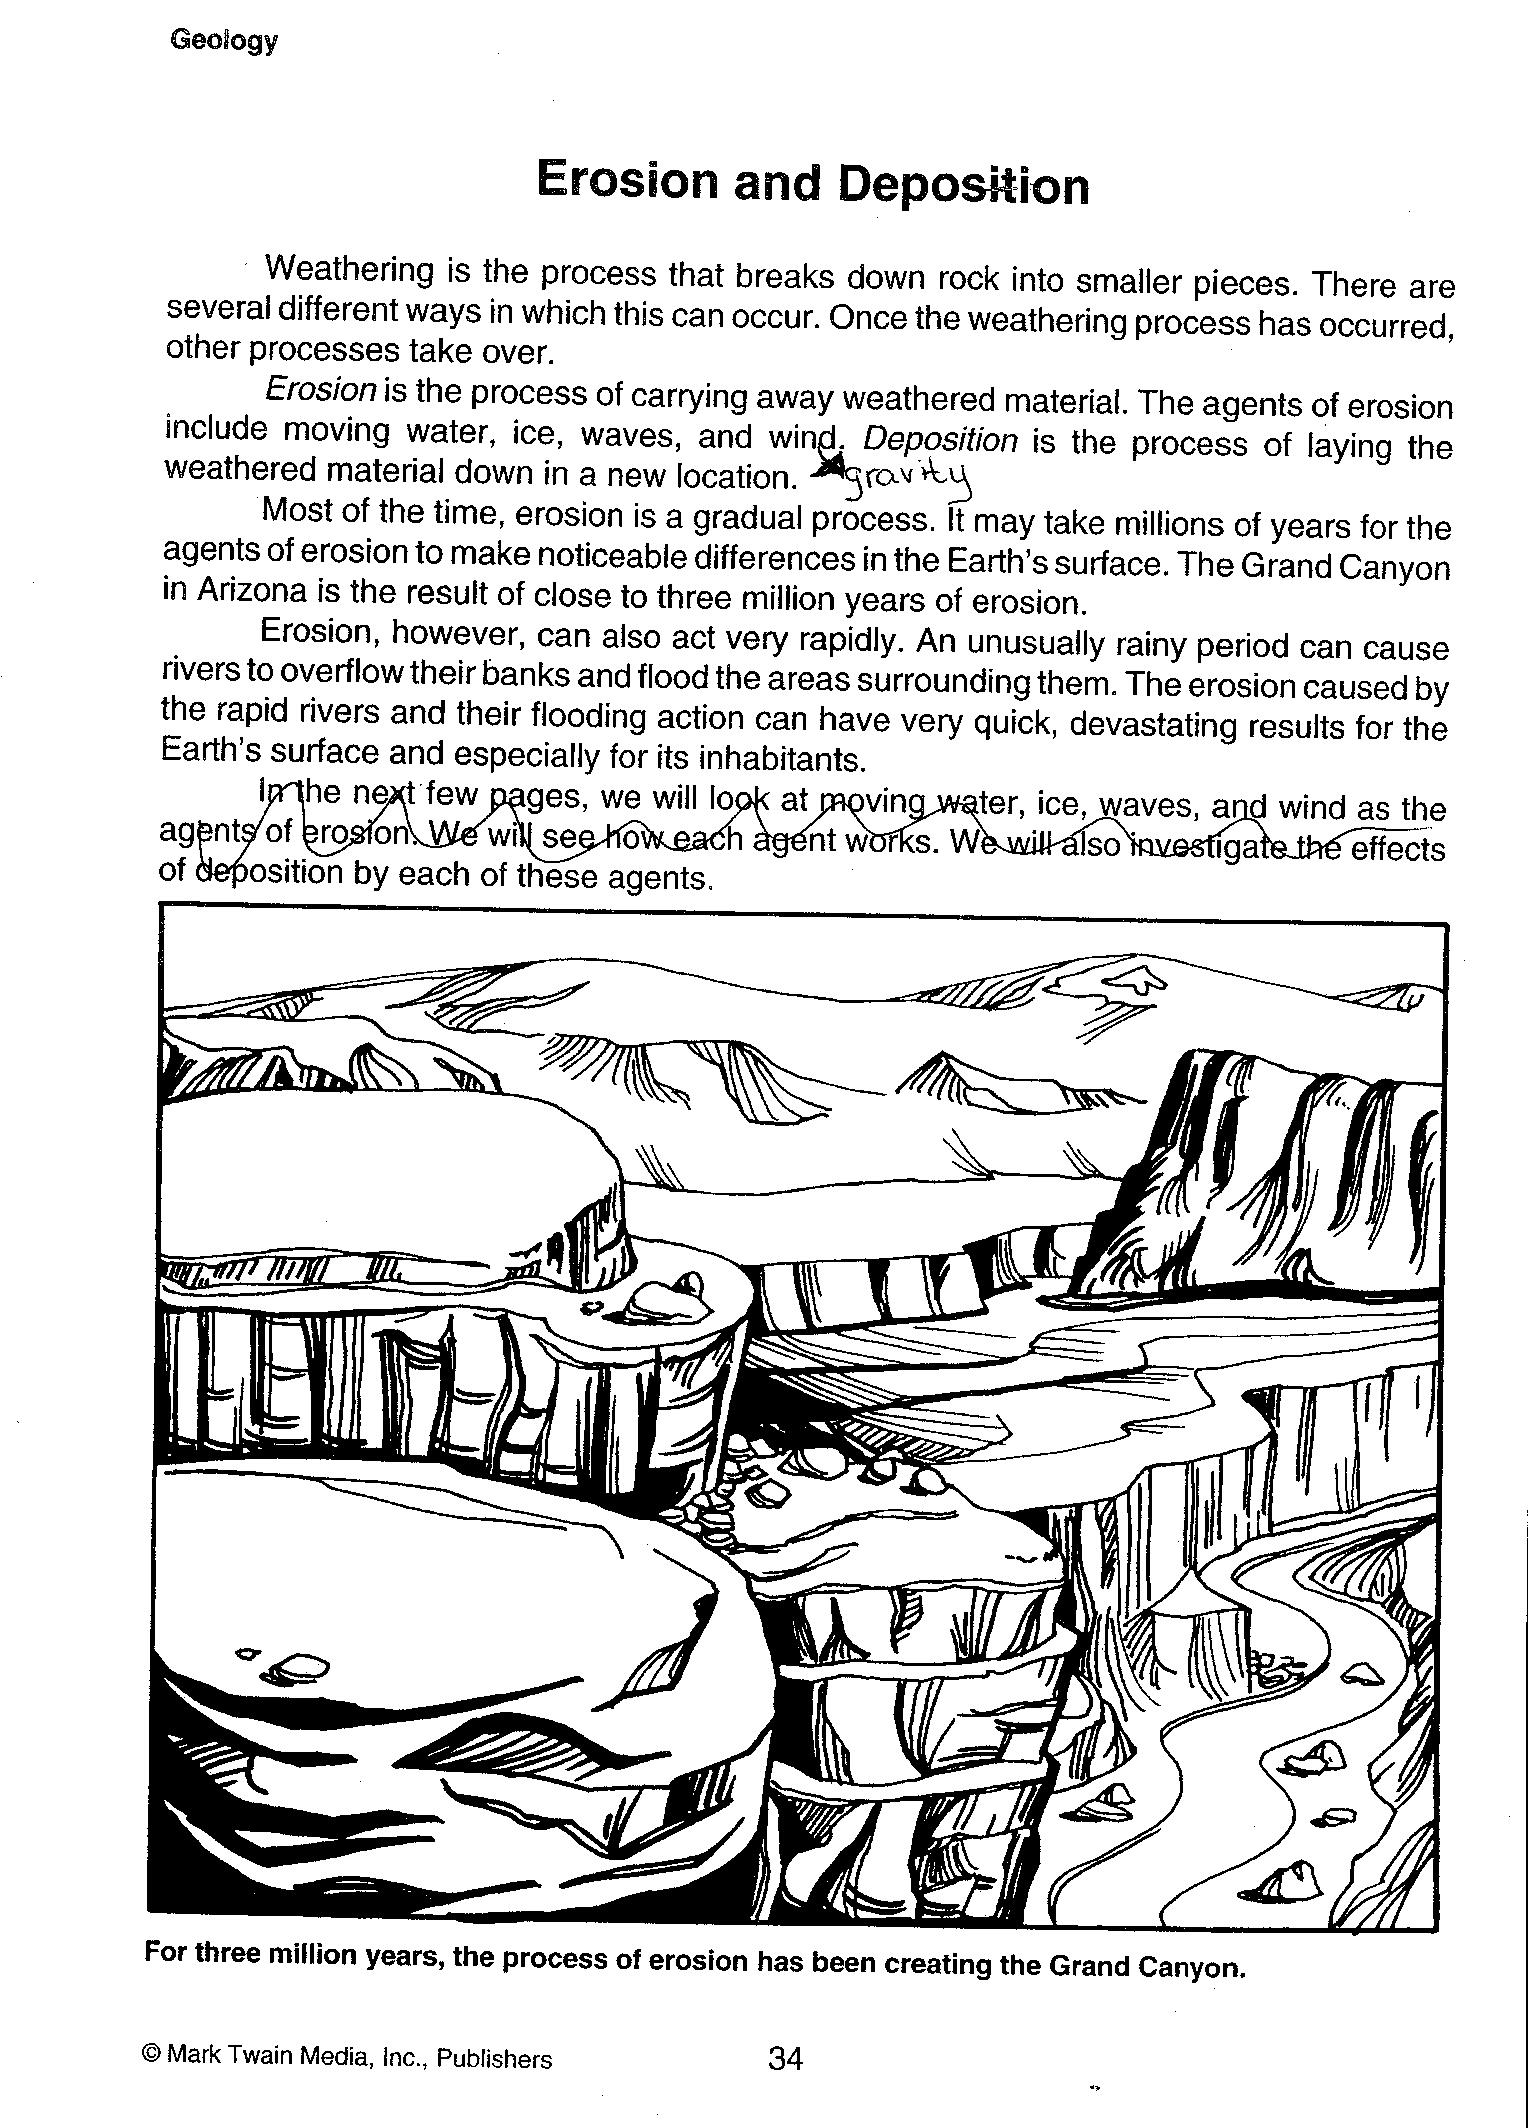 Worksheet On Weathering And Erosion